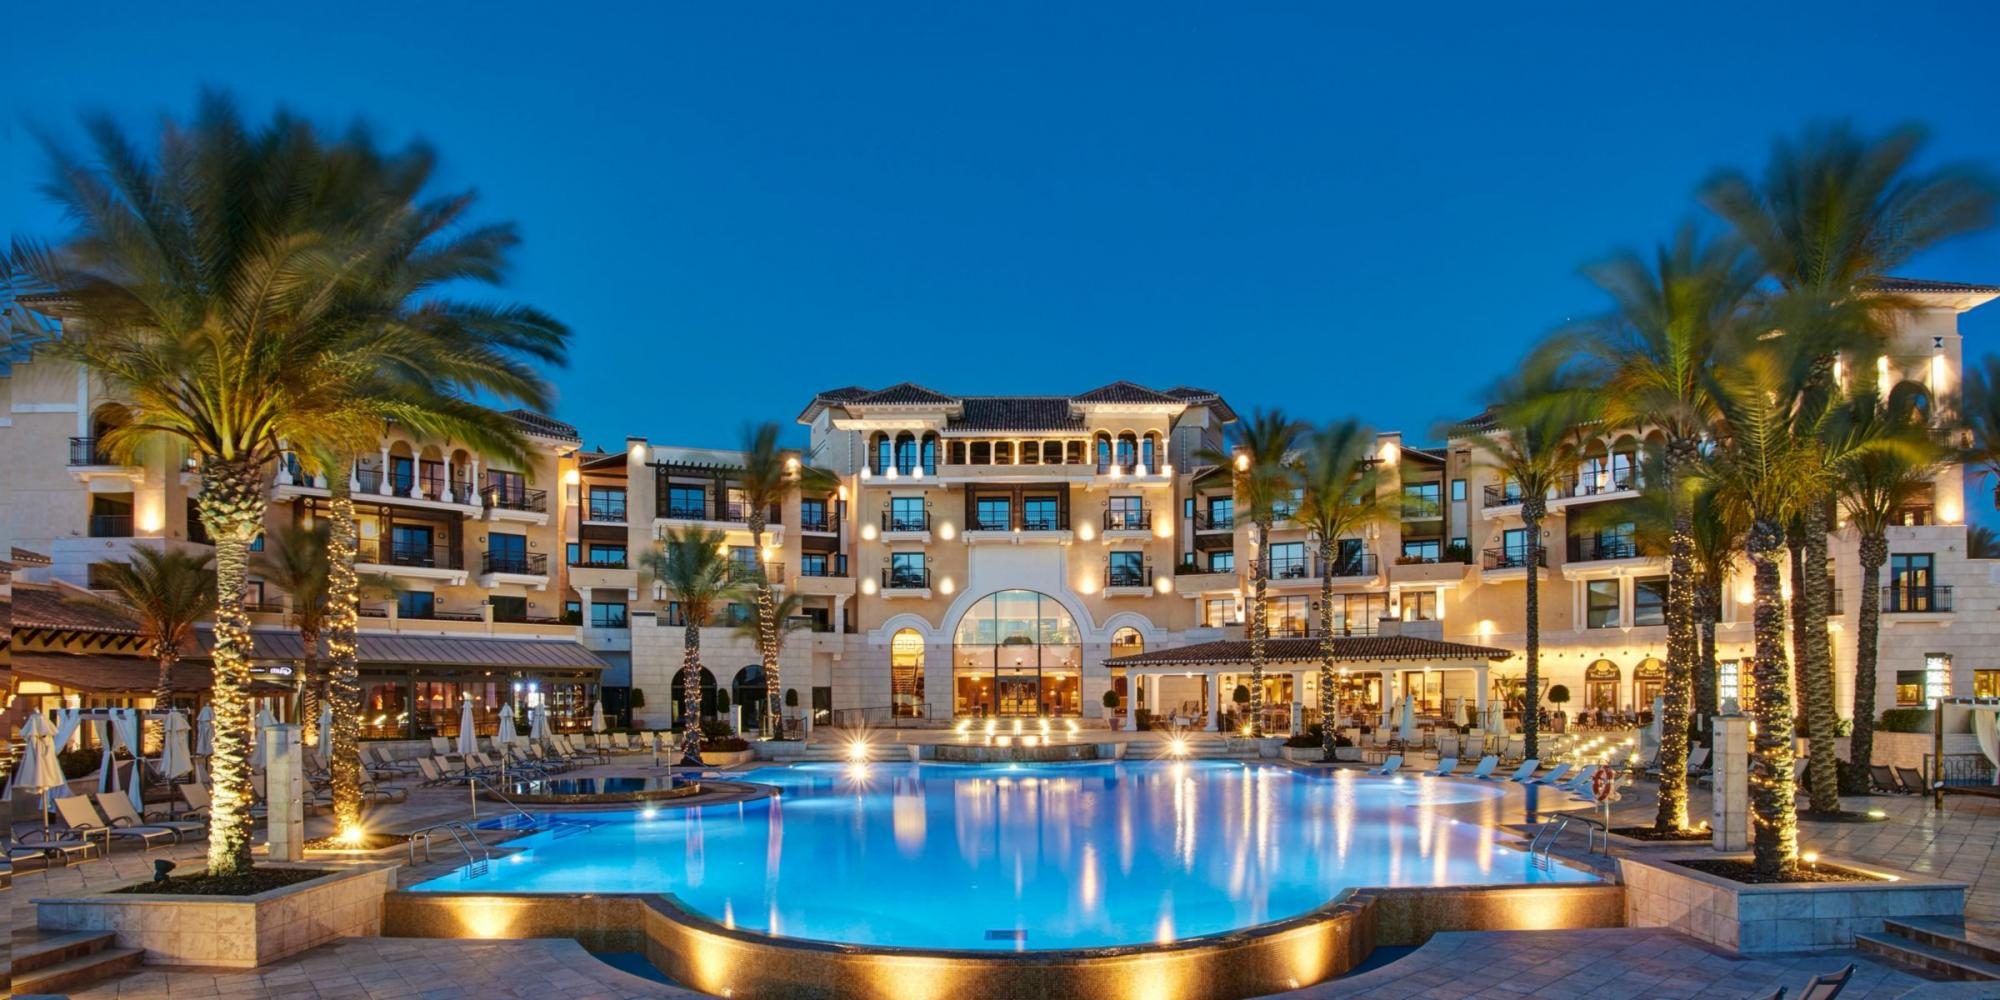 View InterContinental Mar Menor Golf Resort  Spa's lovely hotel situated in amazing Costa Blanca.